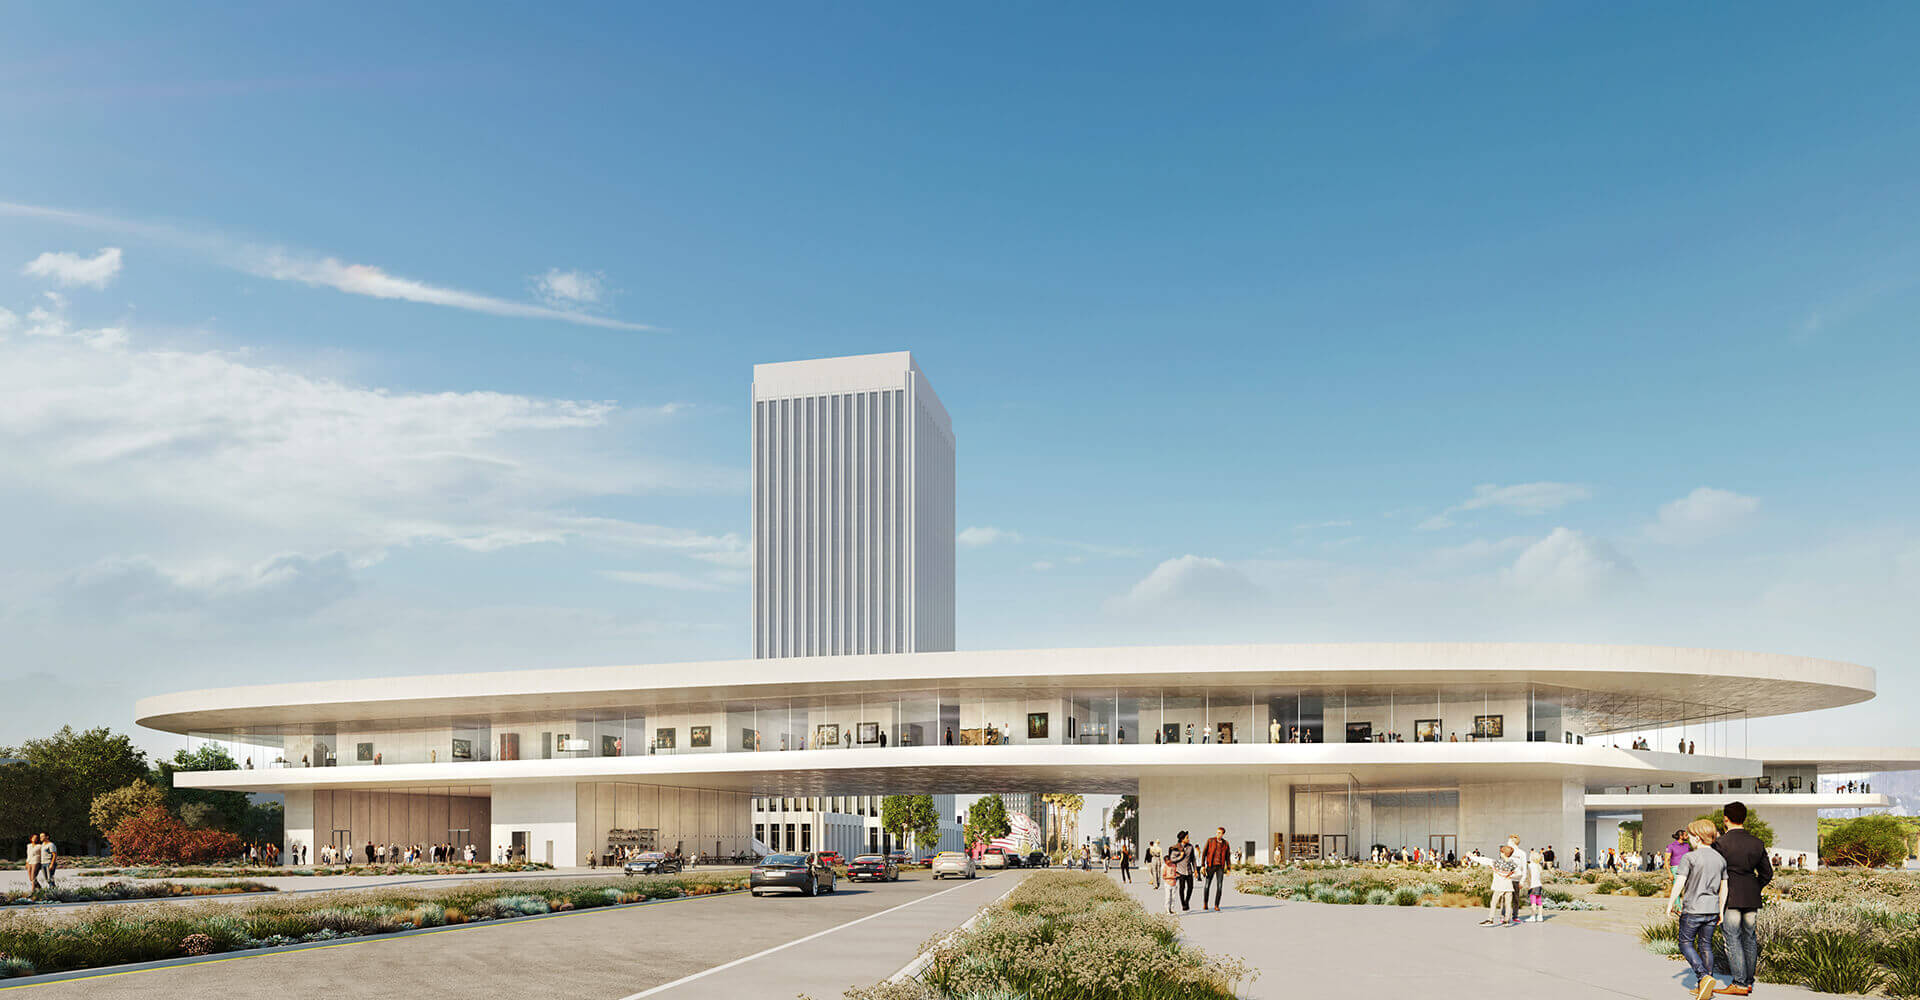 LACMA secures 'critical' city vote to build new campus